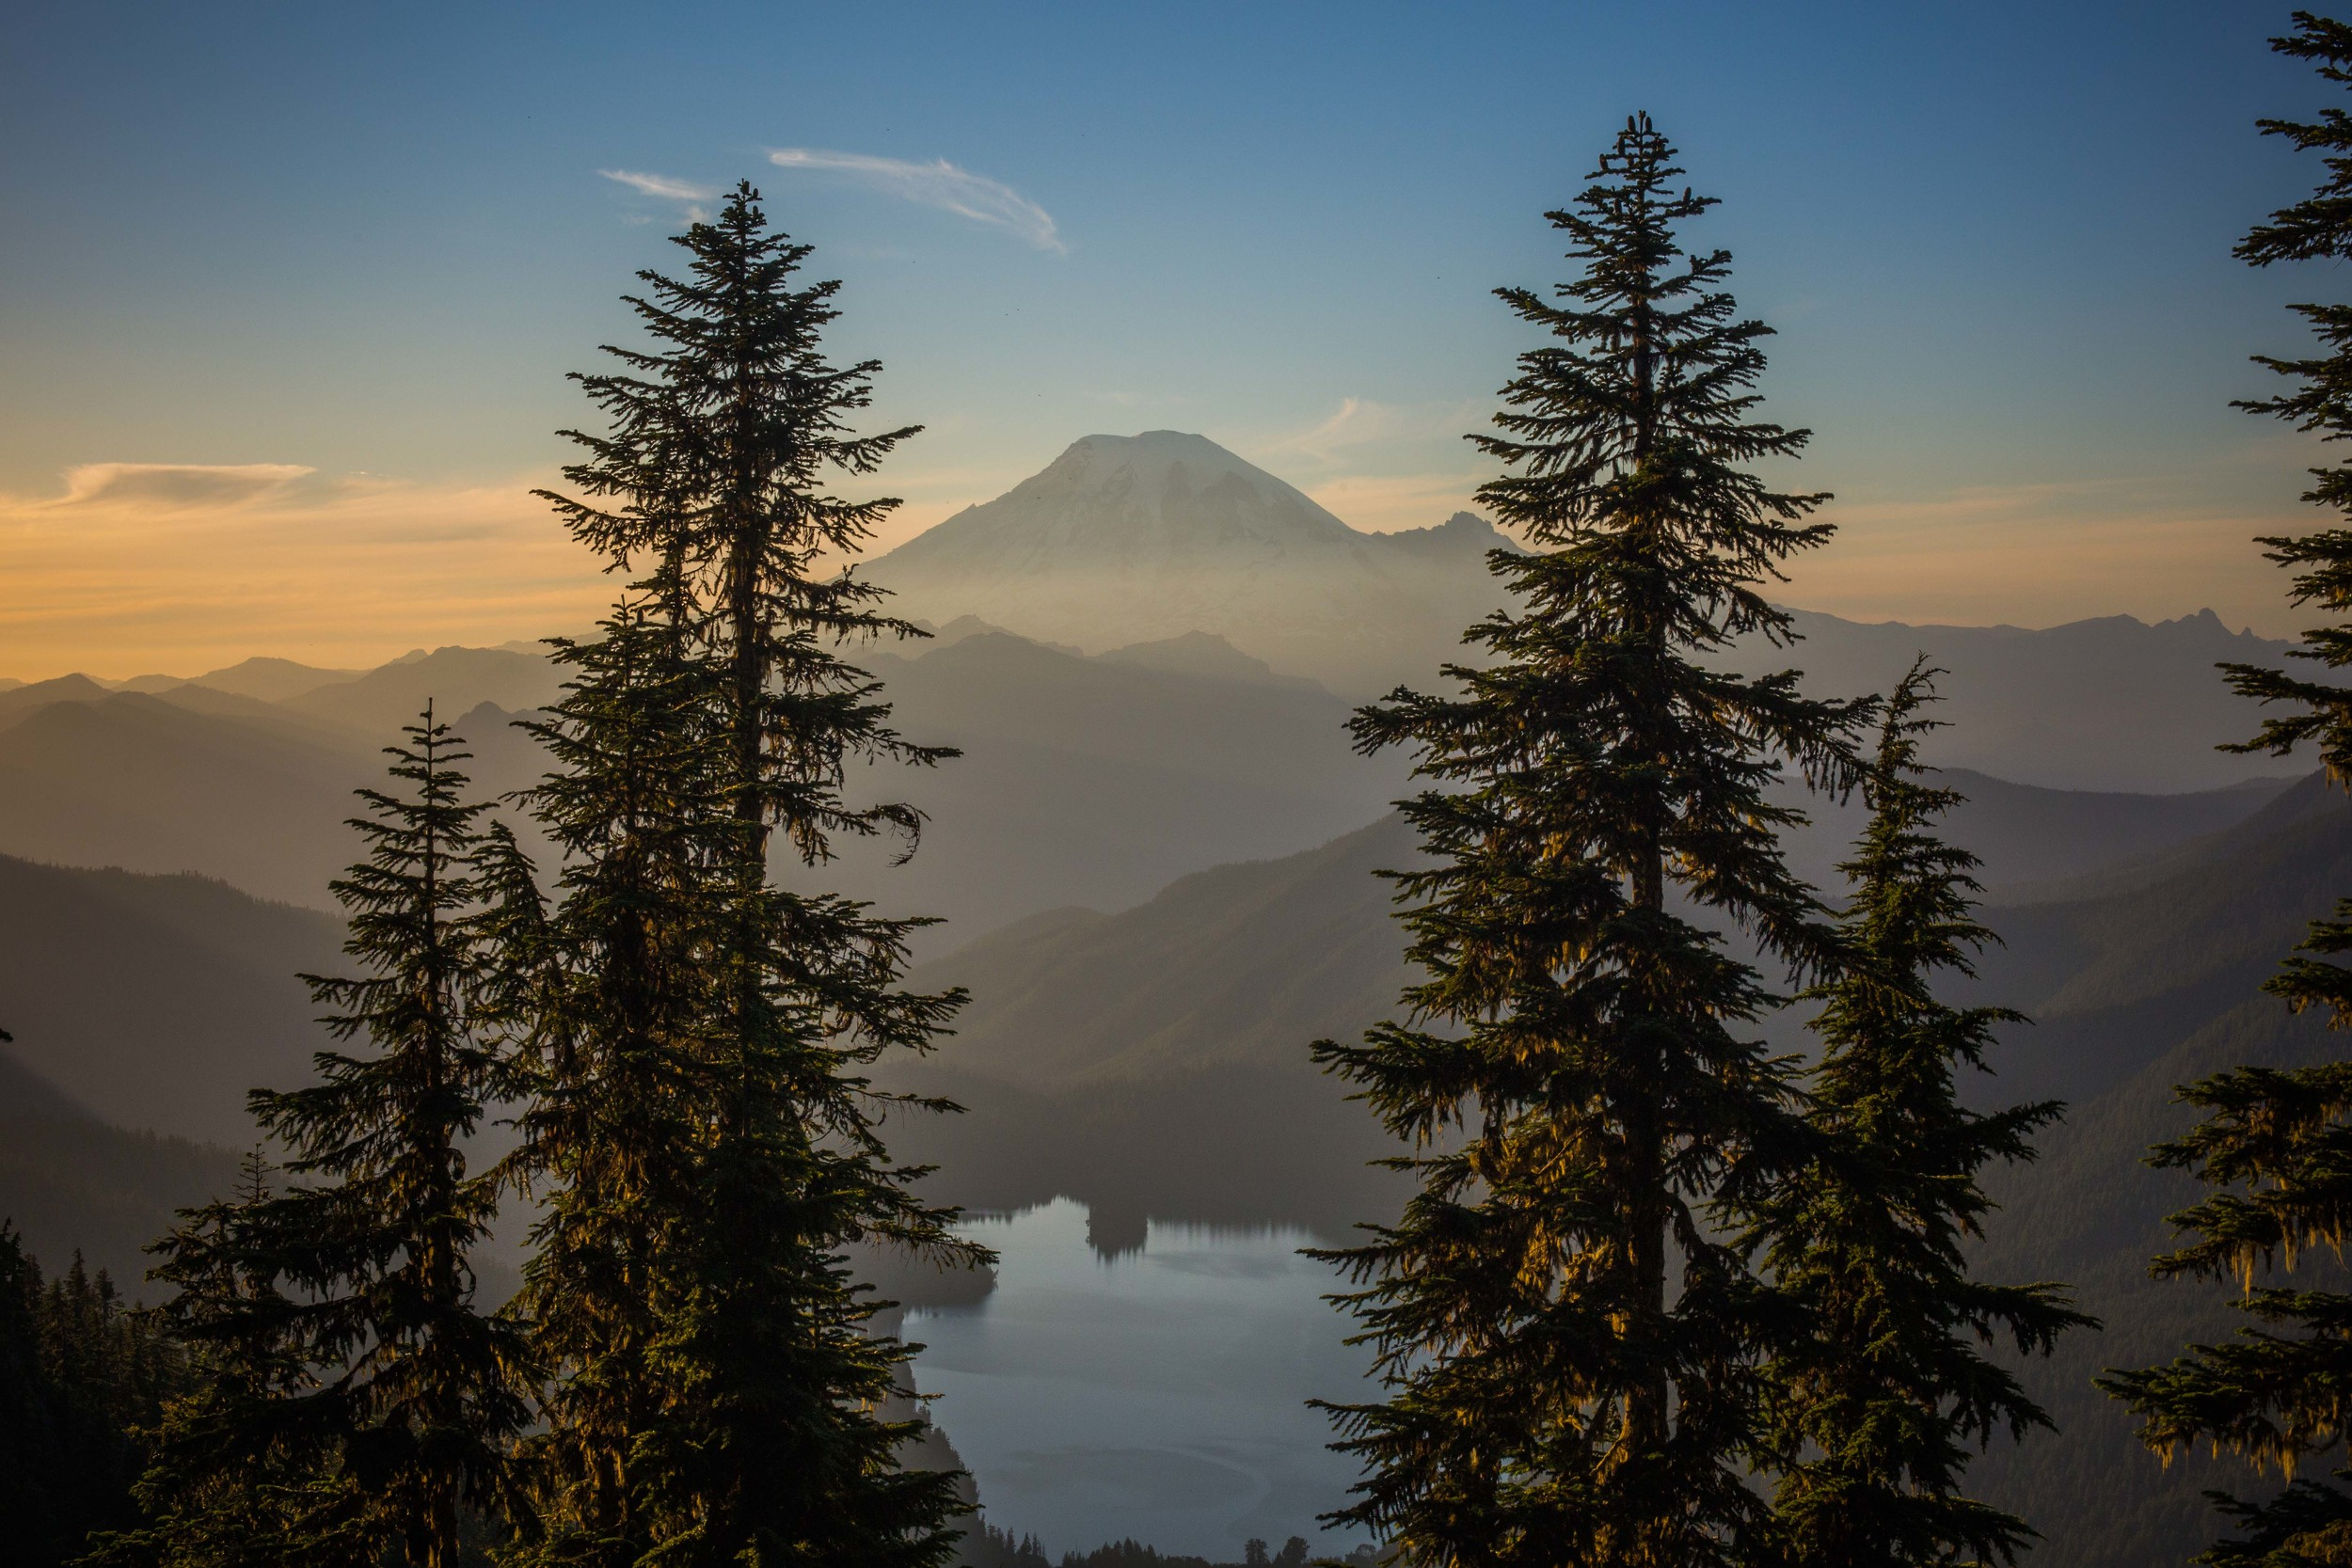 Mt. Rainer with Packwood Lake in the foreground on our first evening hike in.